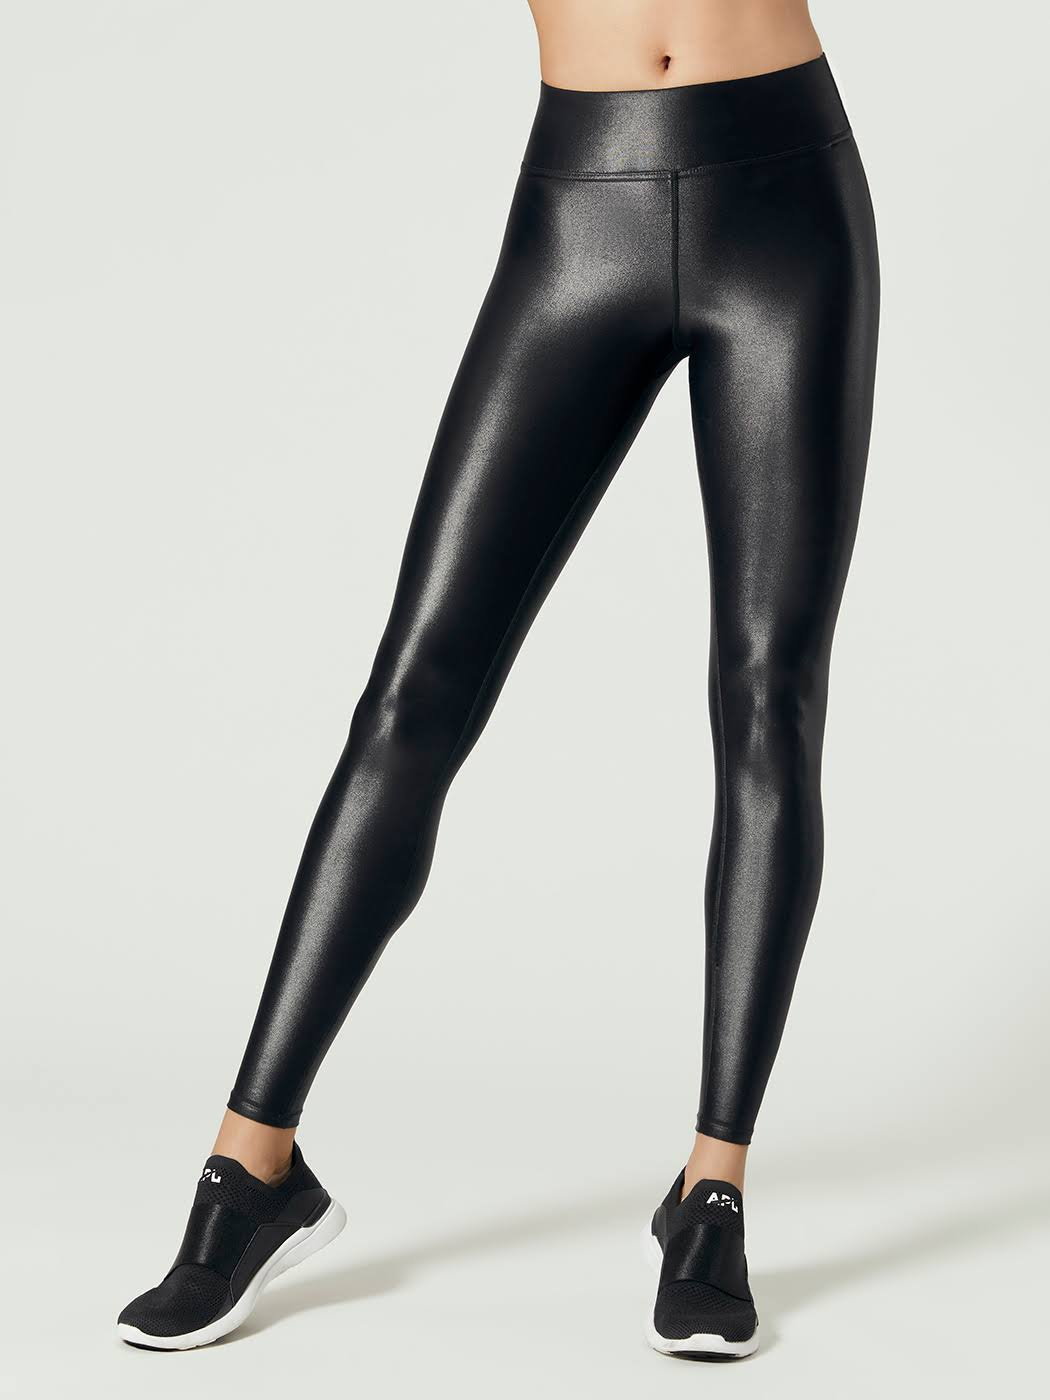 Carbon38 Takara Leggings Carbon38 Carbon38 Leggings Takara Leggings Takara Takara Carbon38 Pn0wOk